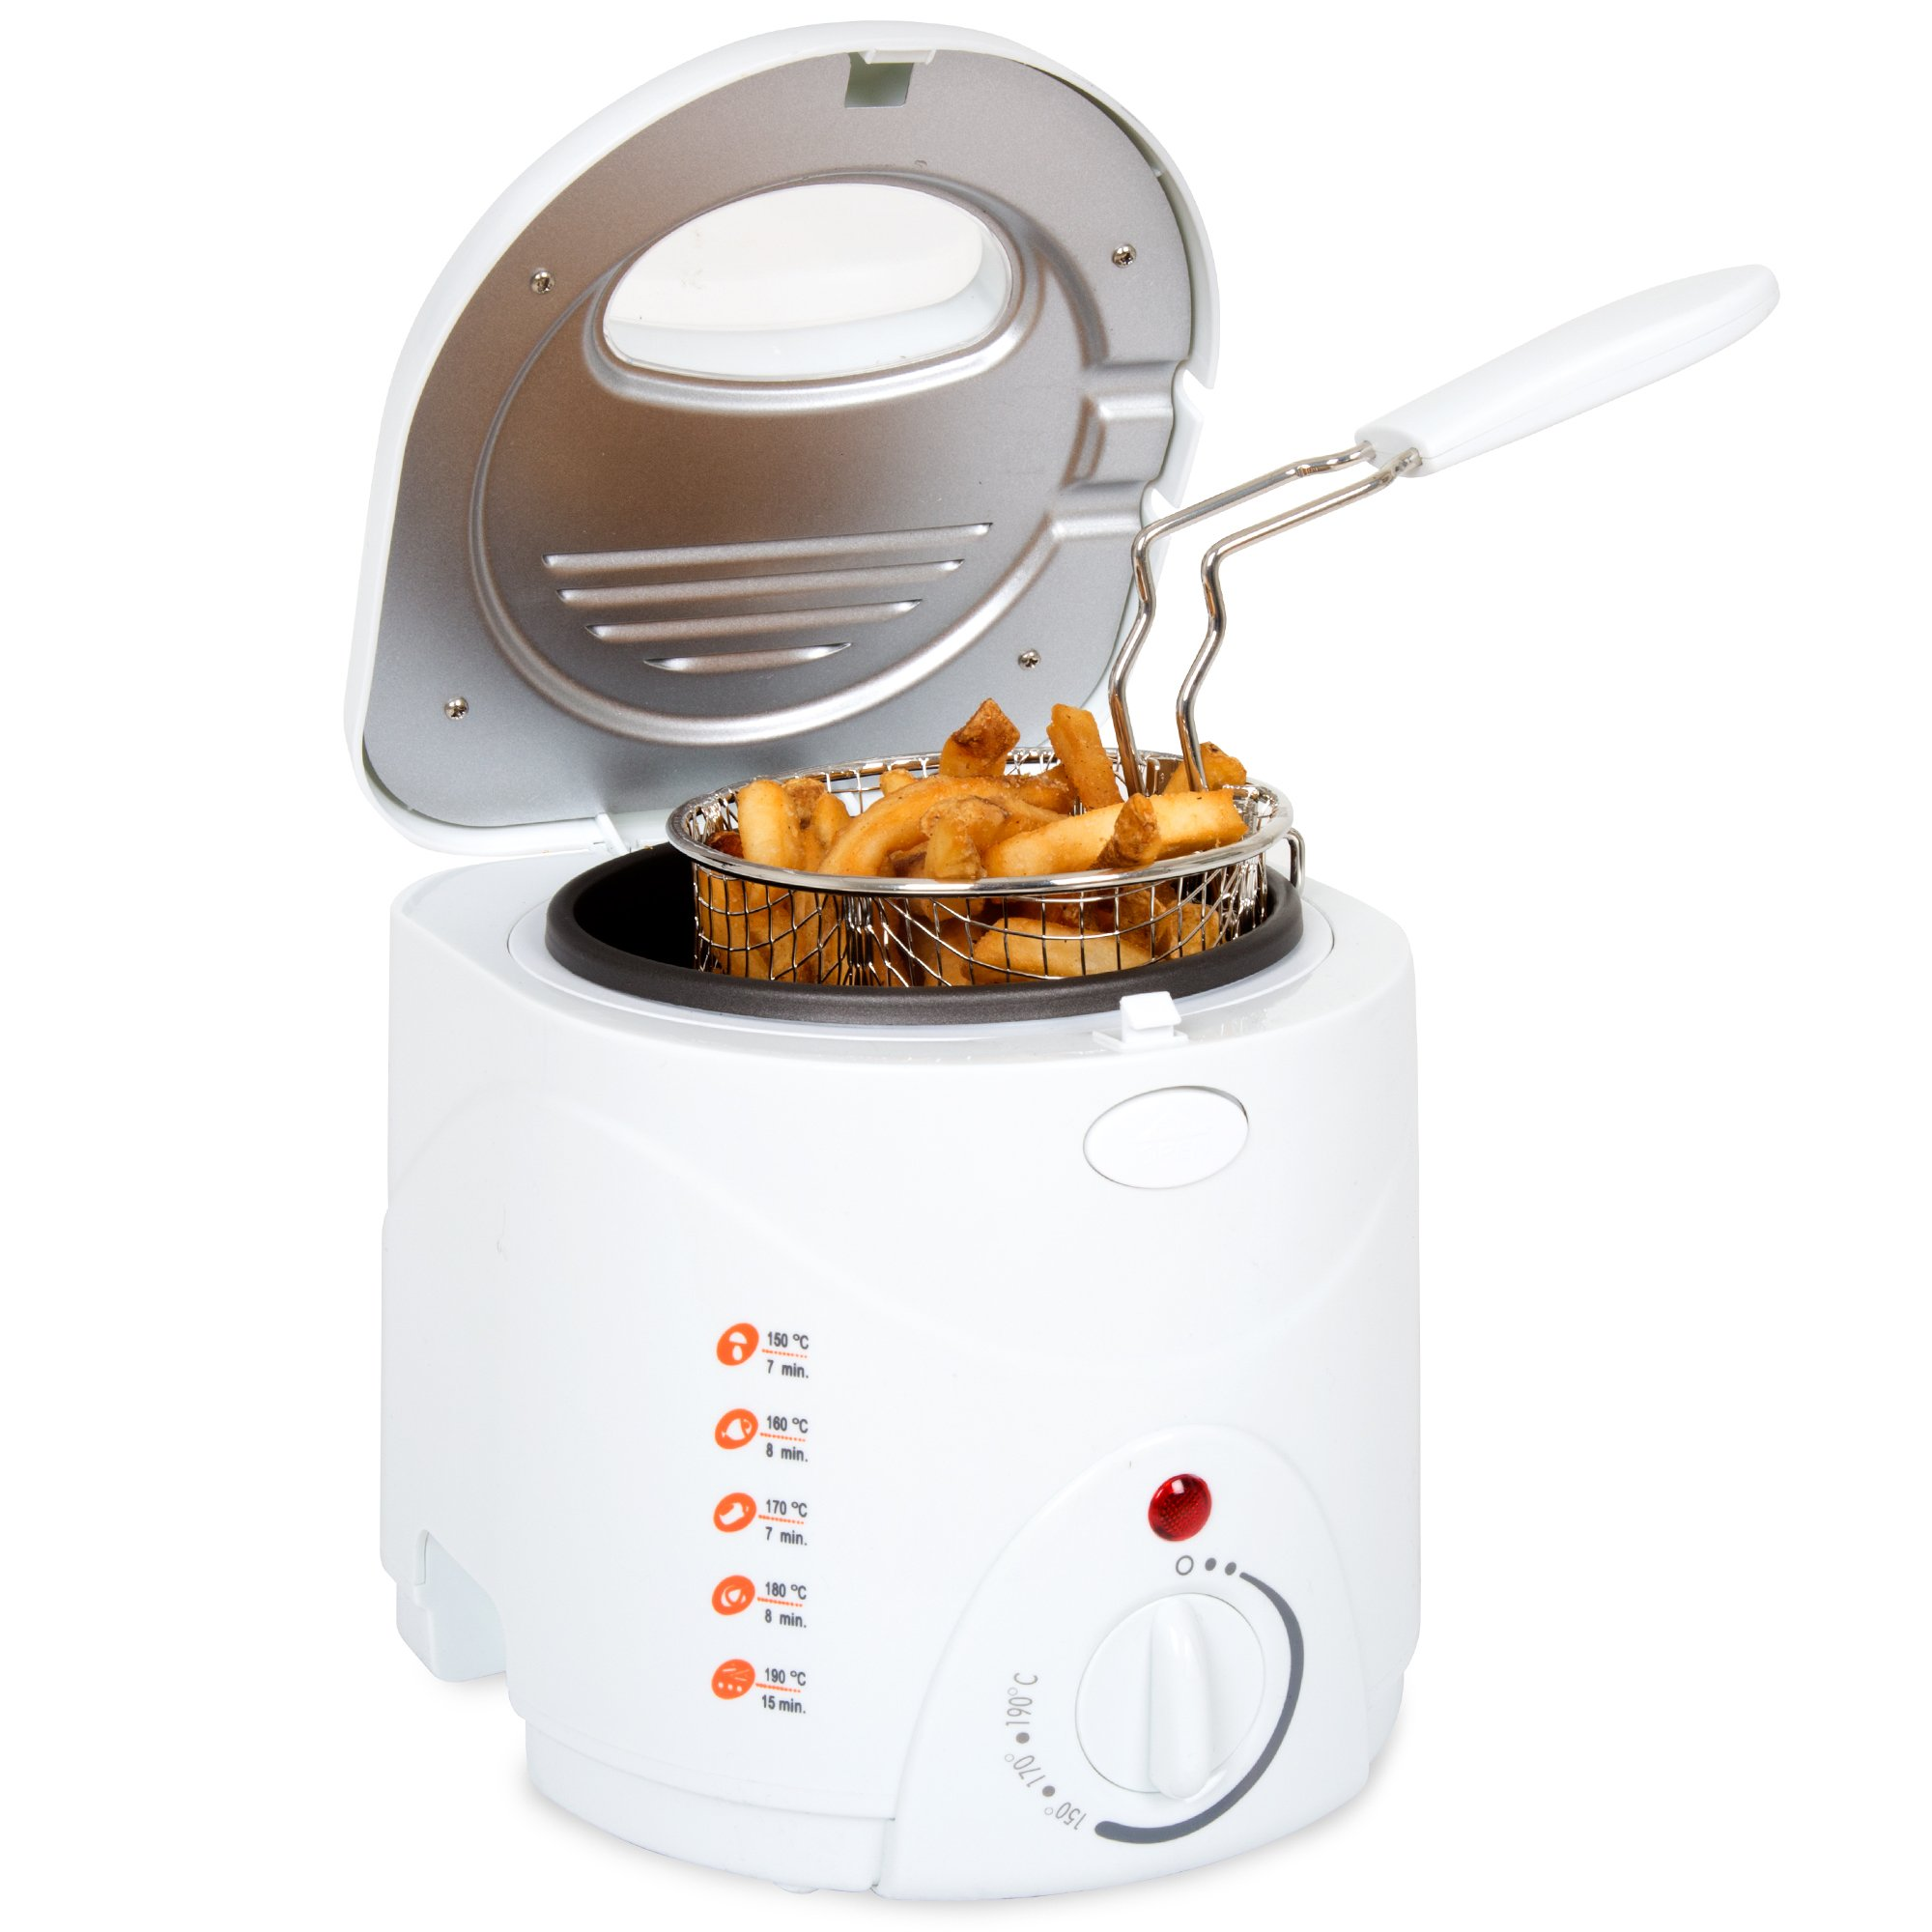 Classic Cuisine 82-HY8105 Cool Touch 1 L Deep Fryer with Wire Fry Basket, White